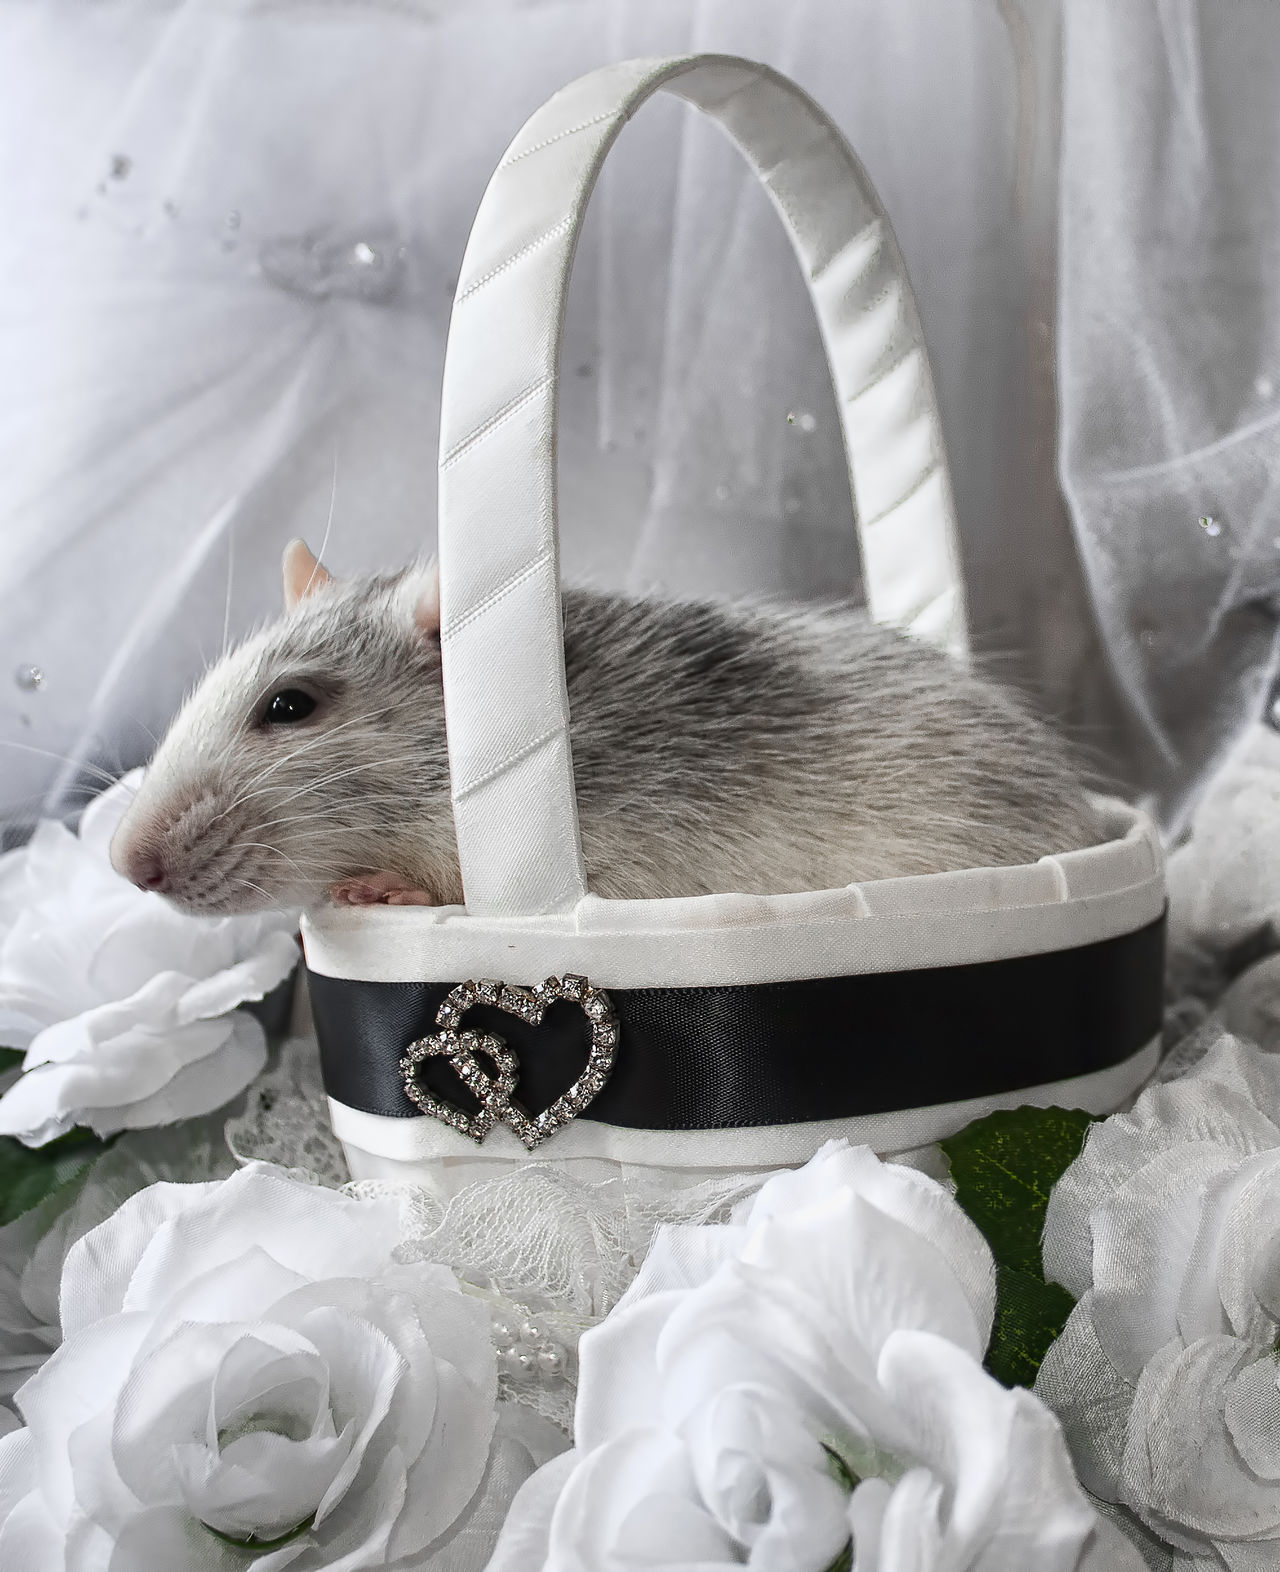 Wedding rat Basket Black And White Domestic Animals Pet Rat Rodent Romantic Wedding